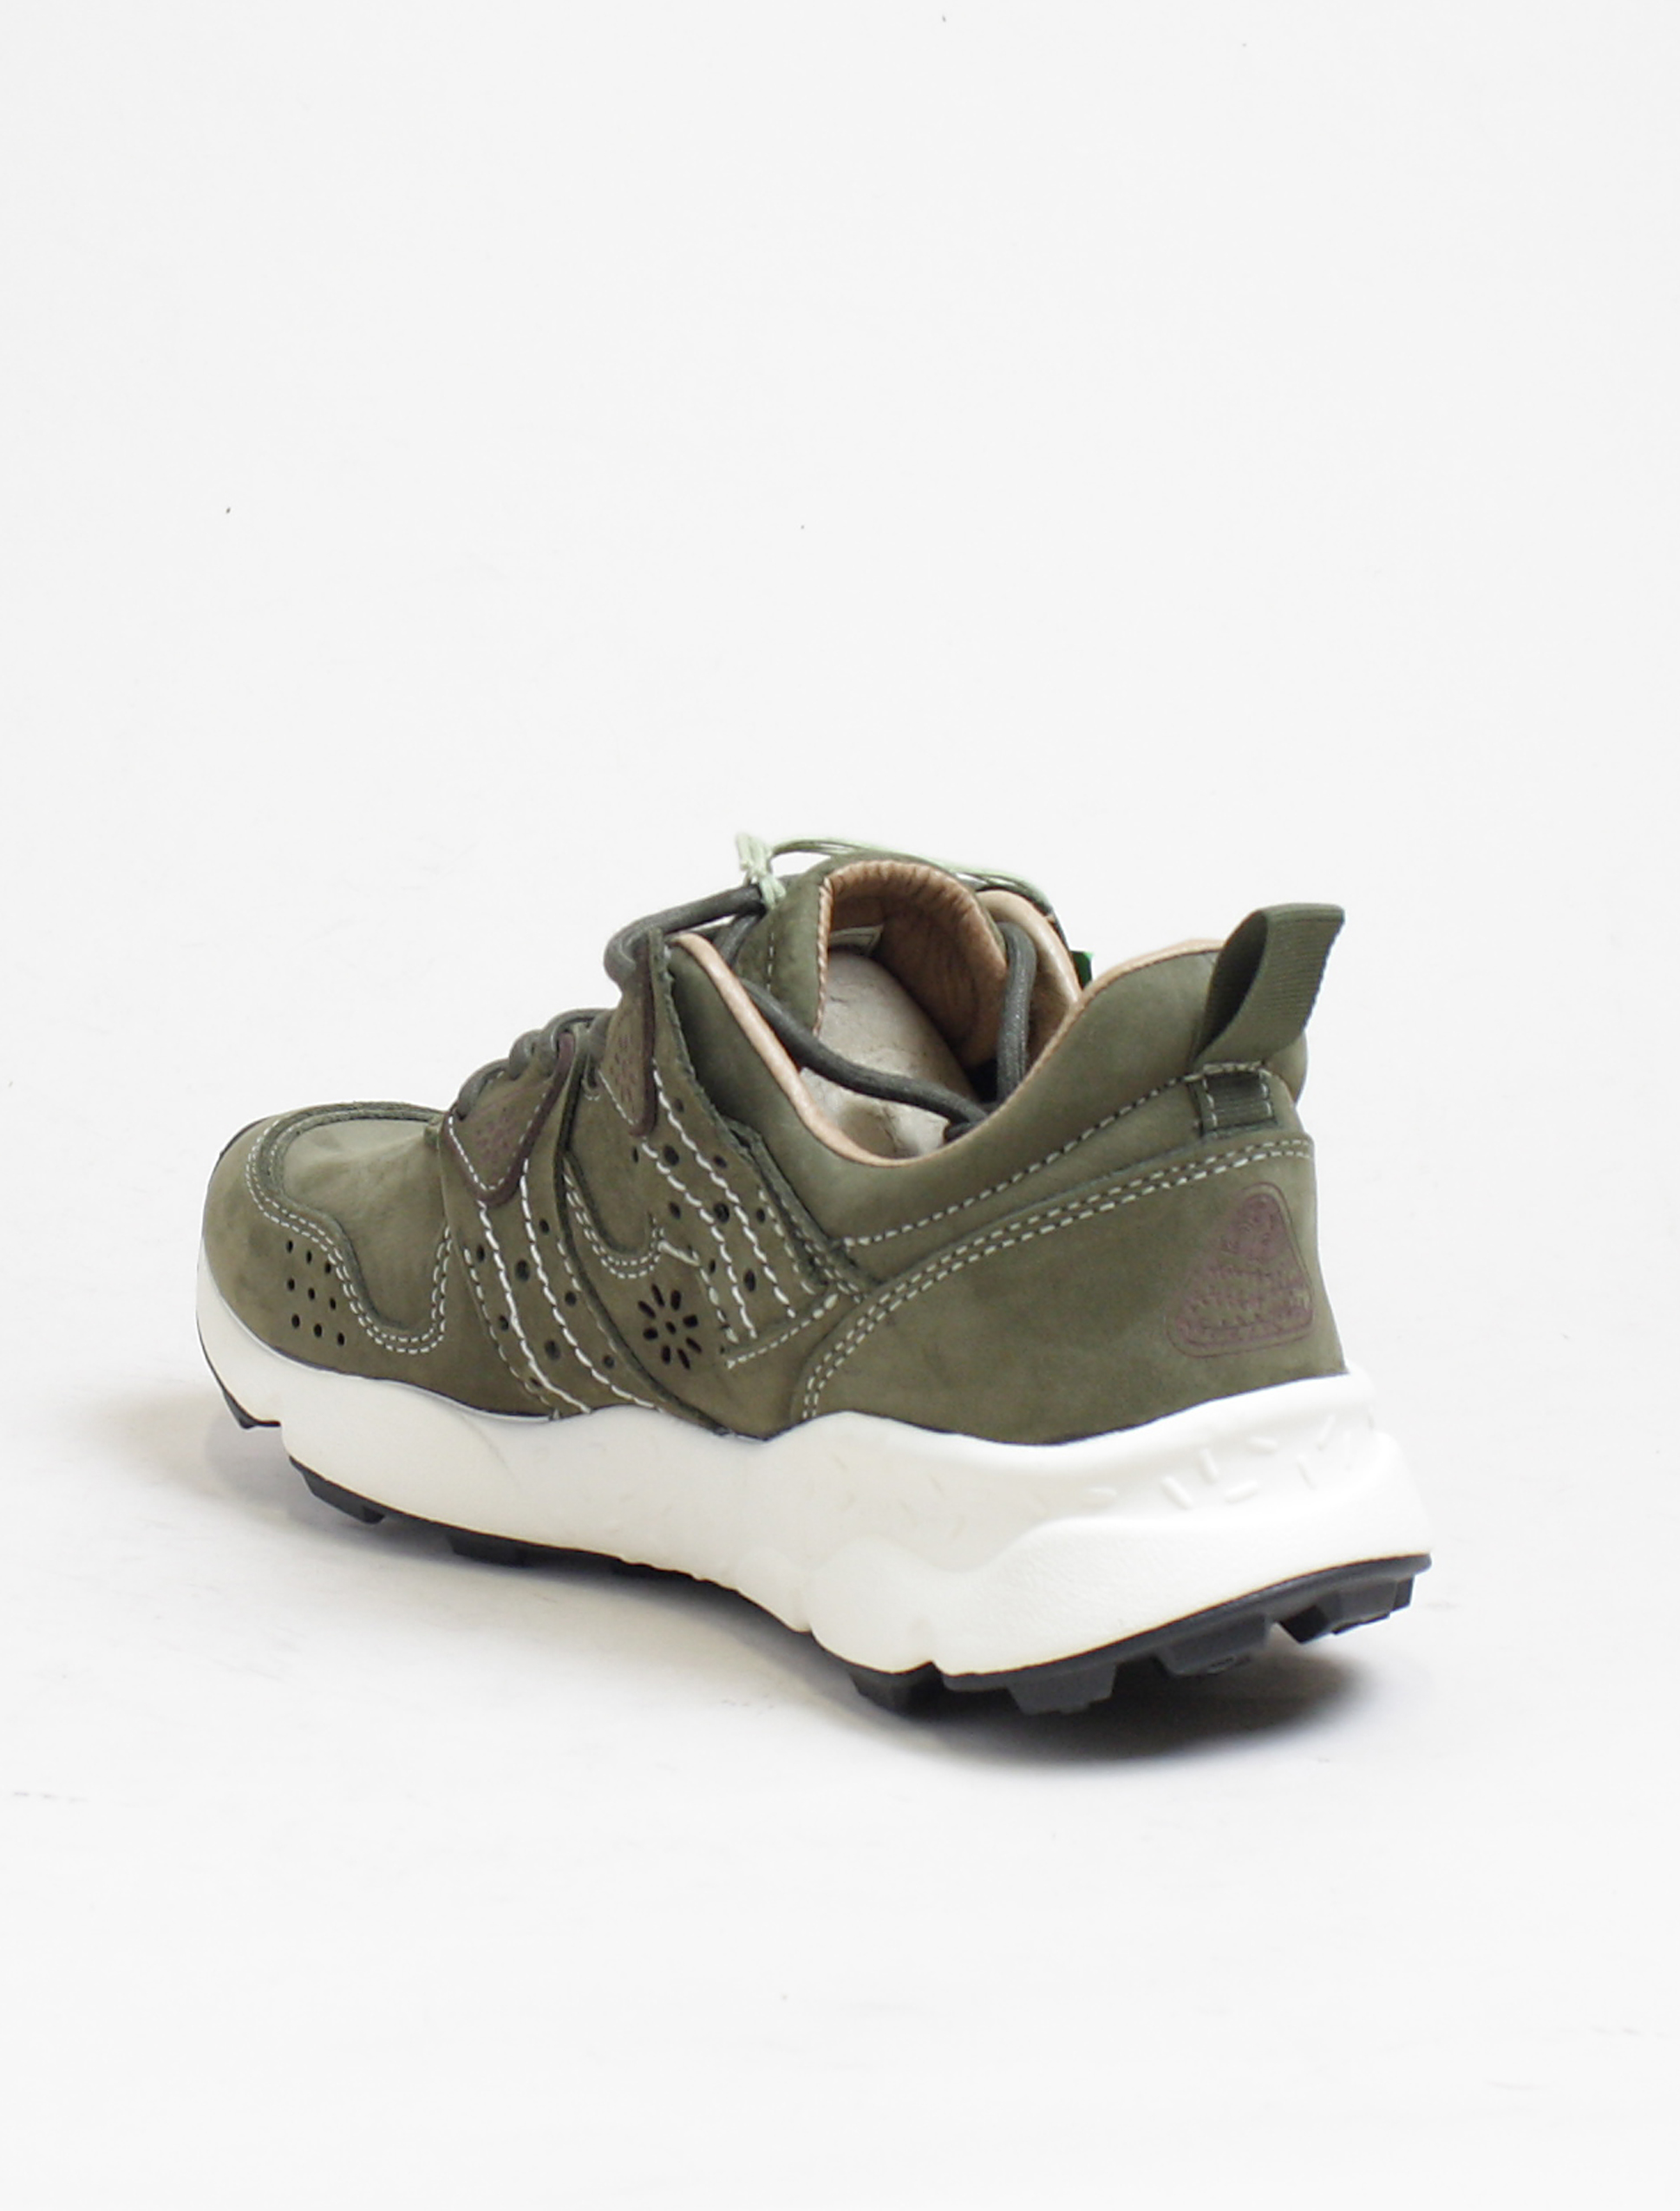 Flower Mountain sneakers Corax 2 nubuk militare dettaglio interno